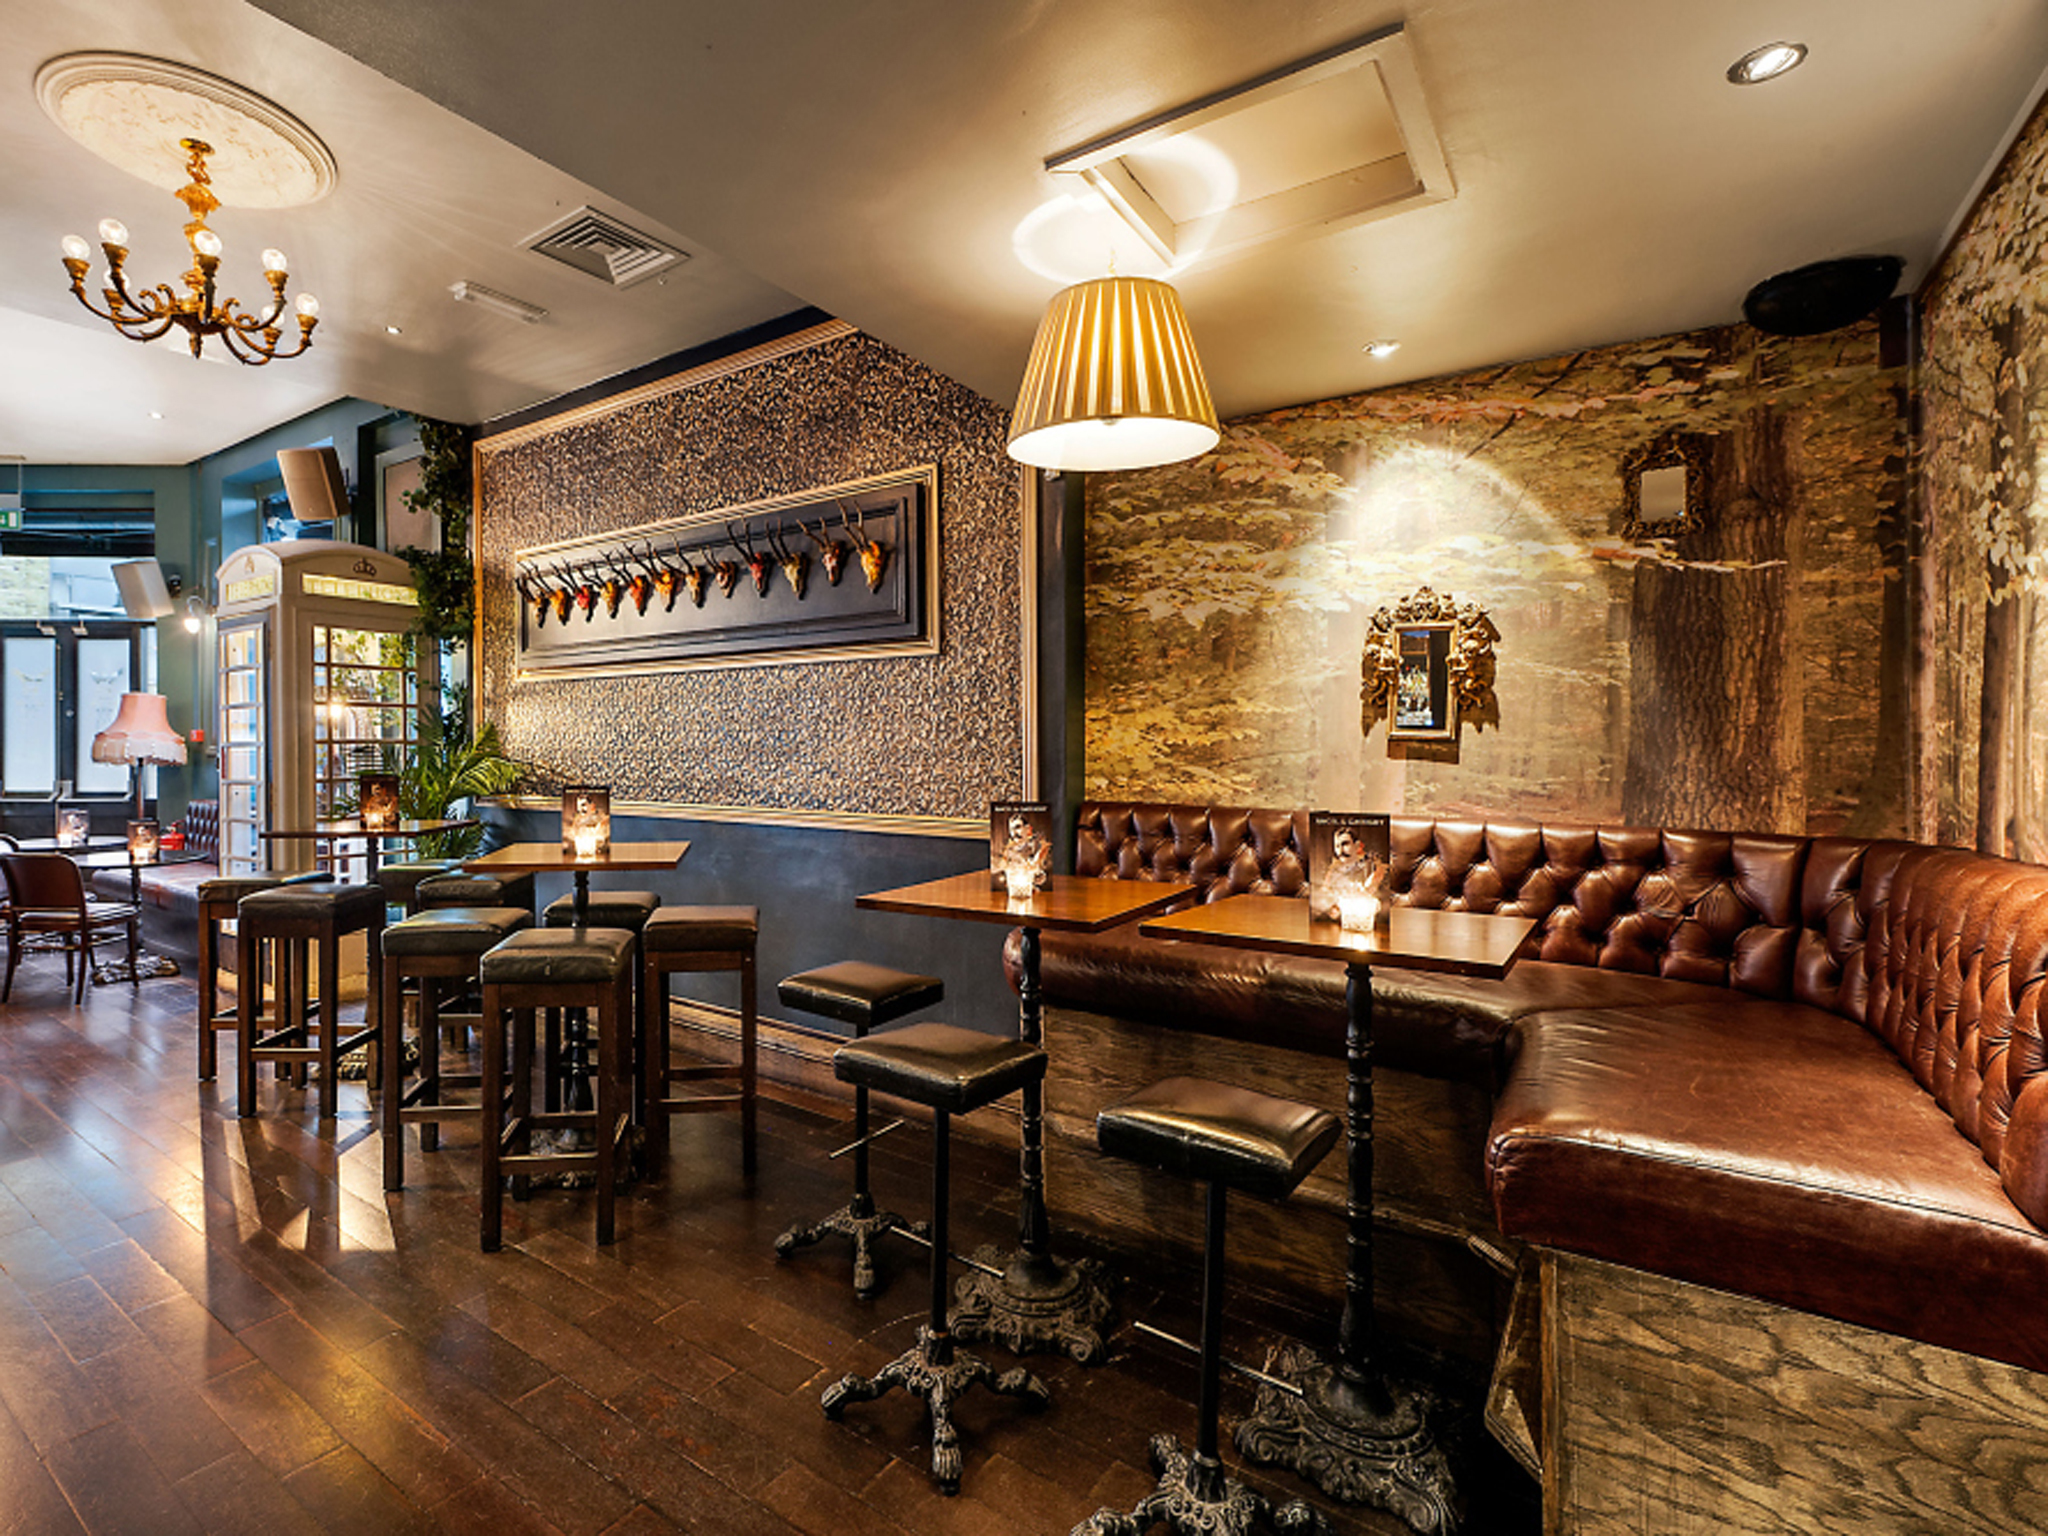 The 100 best bars and pubs in London - Lost Angel, Battersea